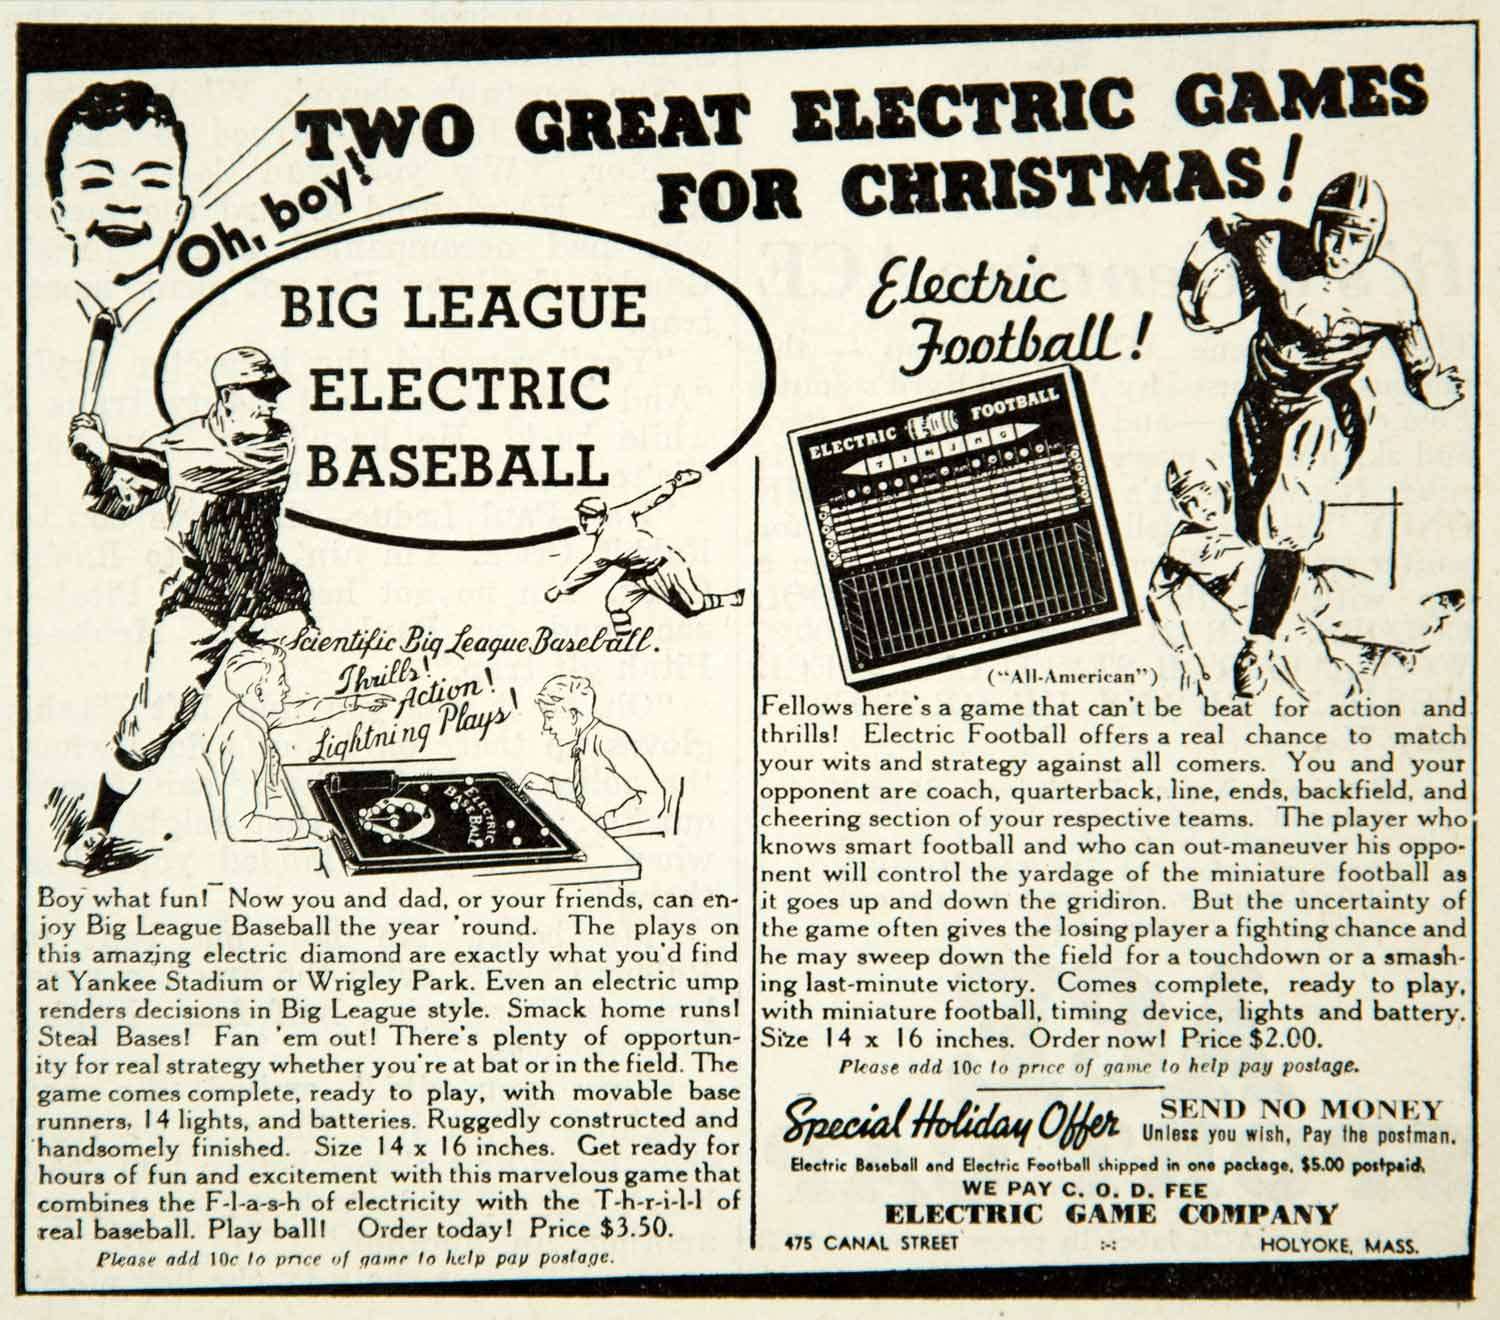 1937 Ad Electric Big League Baseball Football Game Toy 475 Canal St Holyoke YAB3